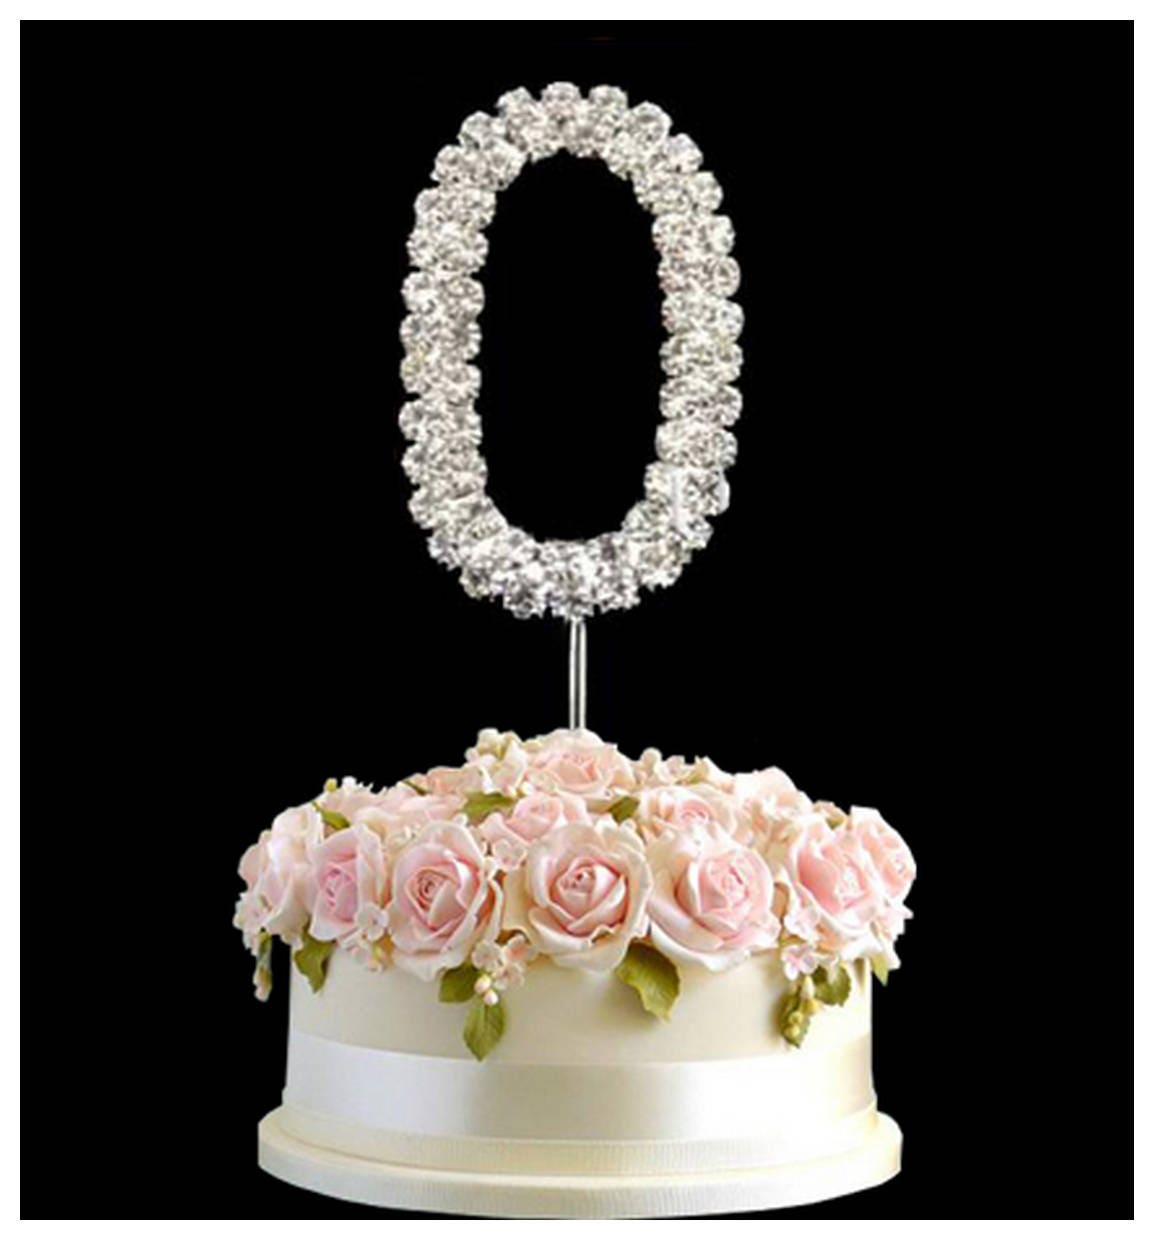 Diamante Rhinestone Cake Pick Topper for Birthday Party Celebration Family Function Cake Decoration in 4 Size Different Colour